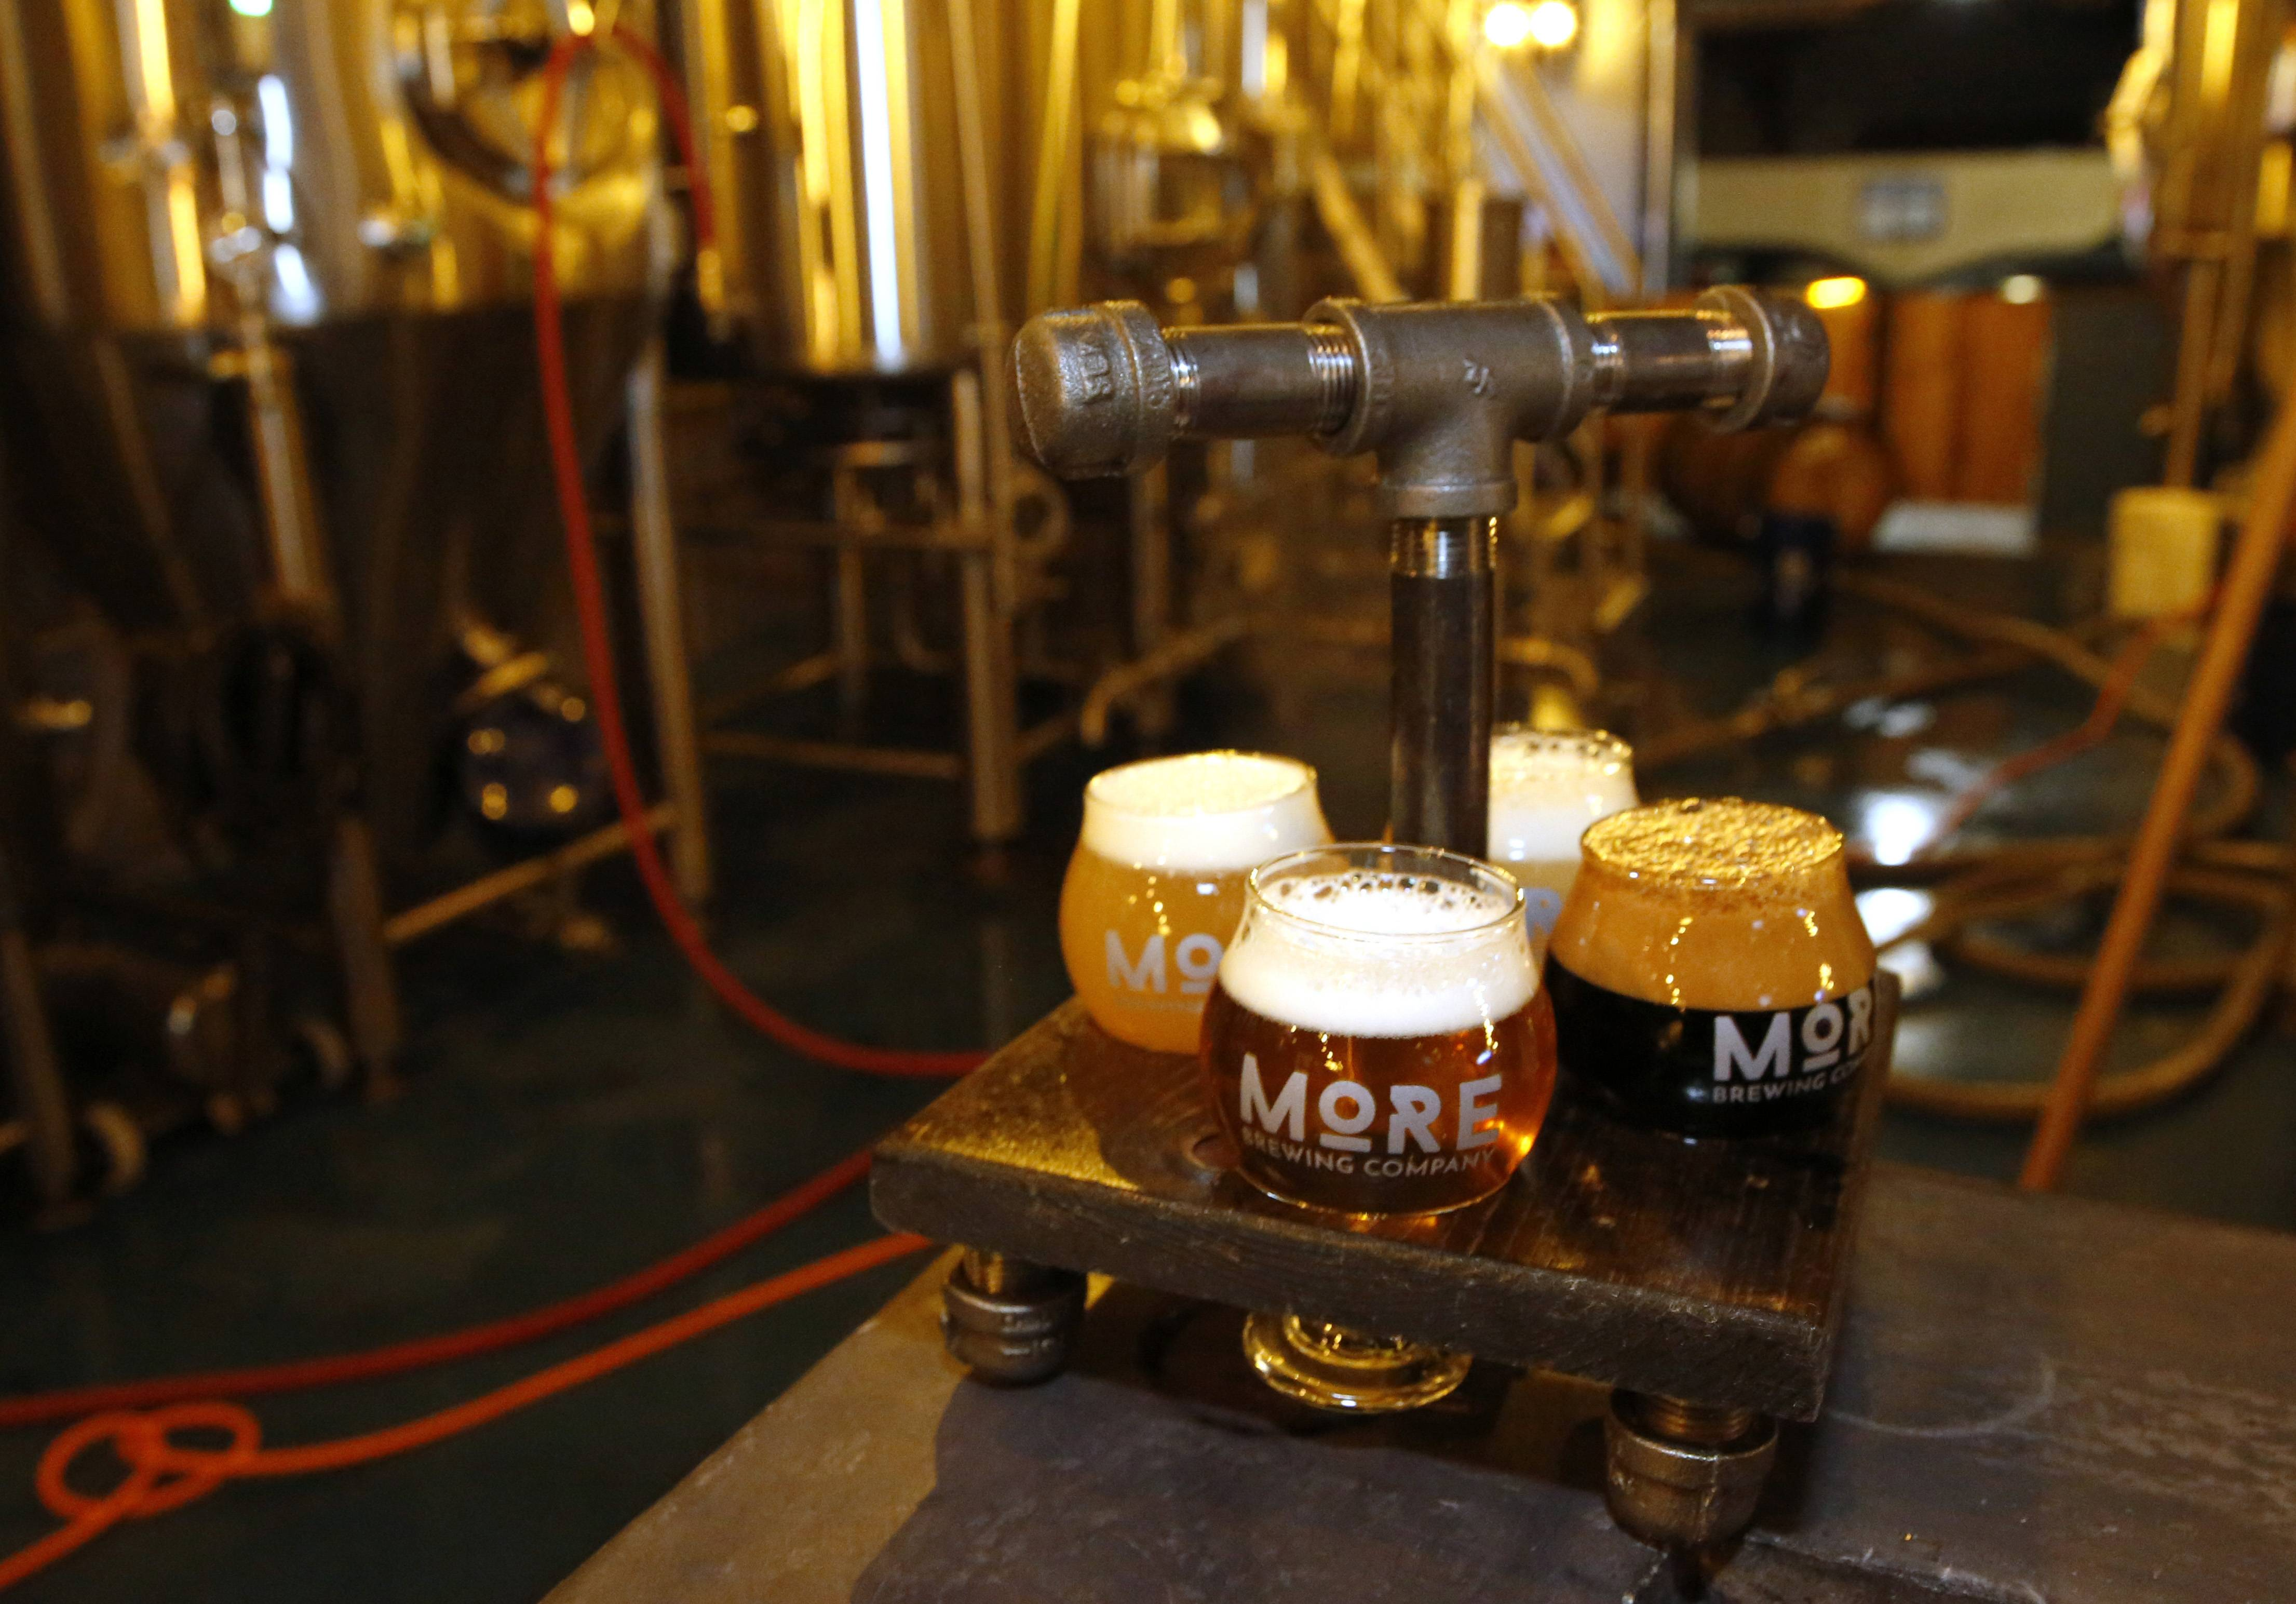 A flight gives beer lovers the chance to sample the various offerings at More Brewing Company.